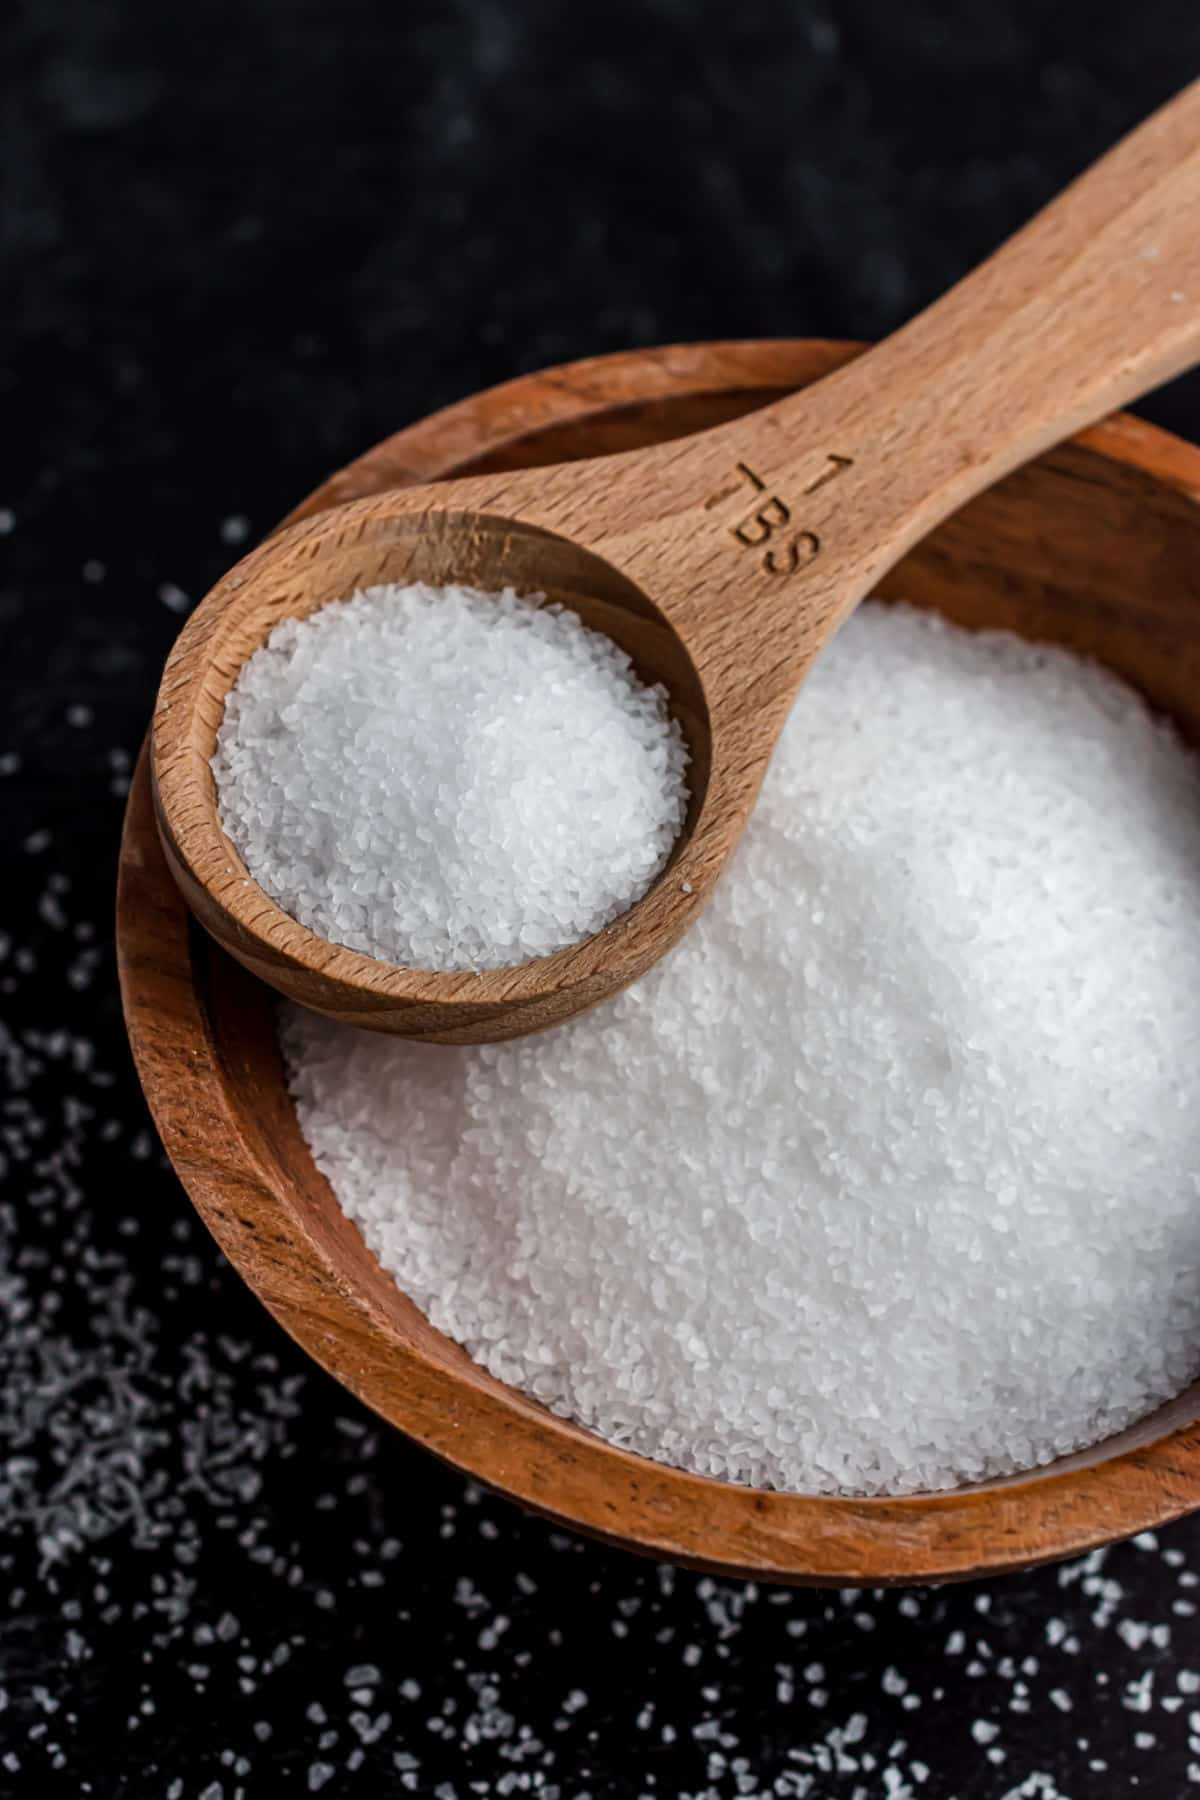 Kosher salt in a wooden bowl with wooden tablespoon.